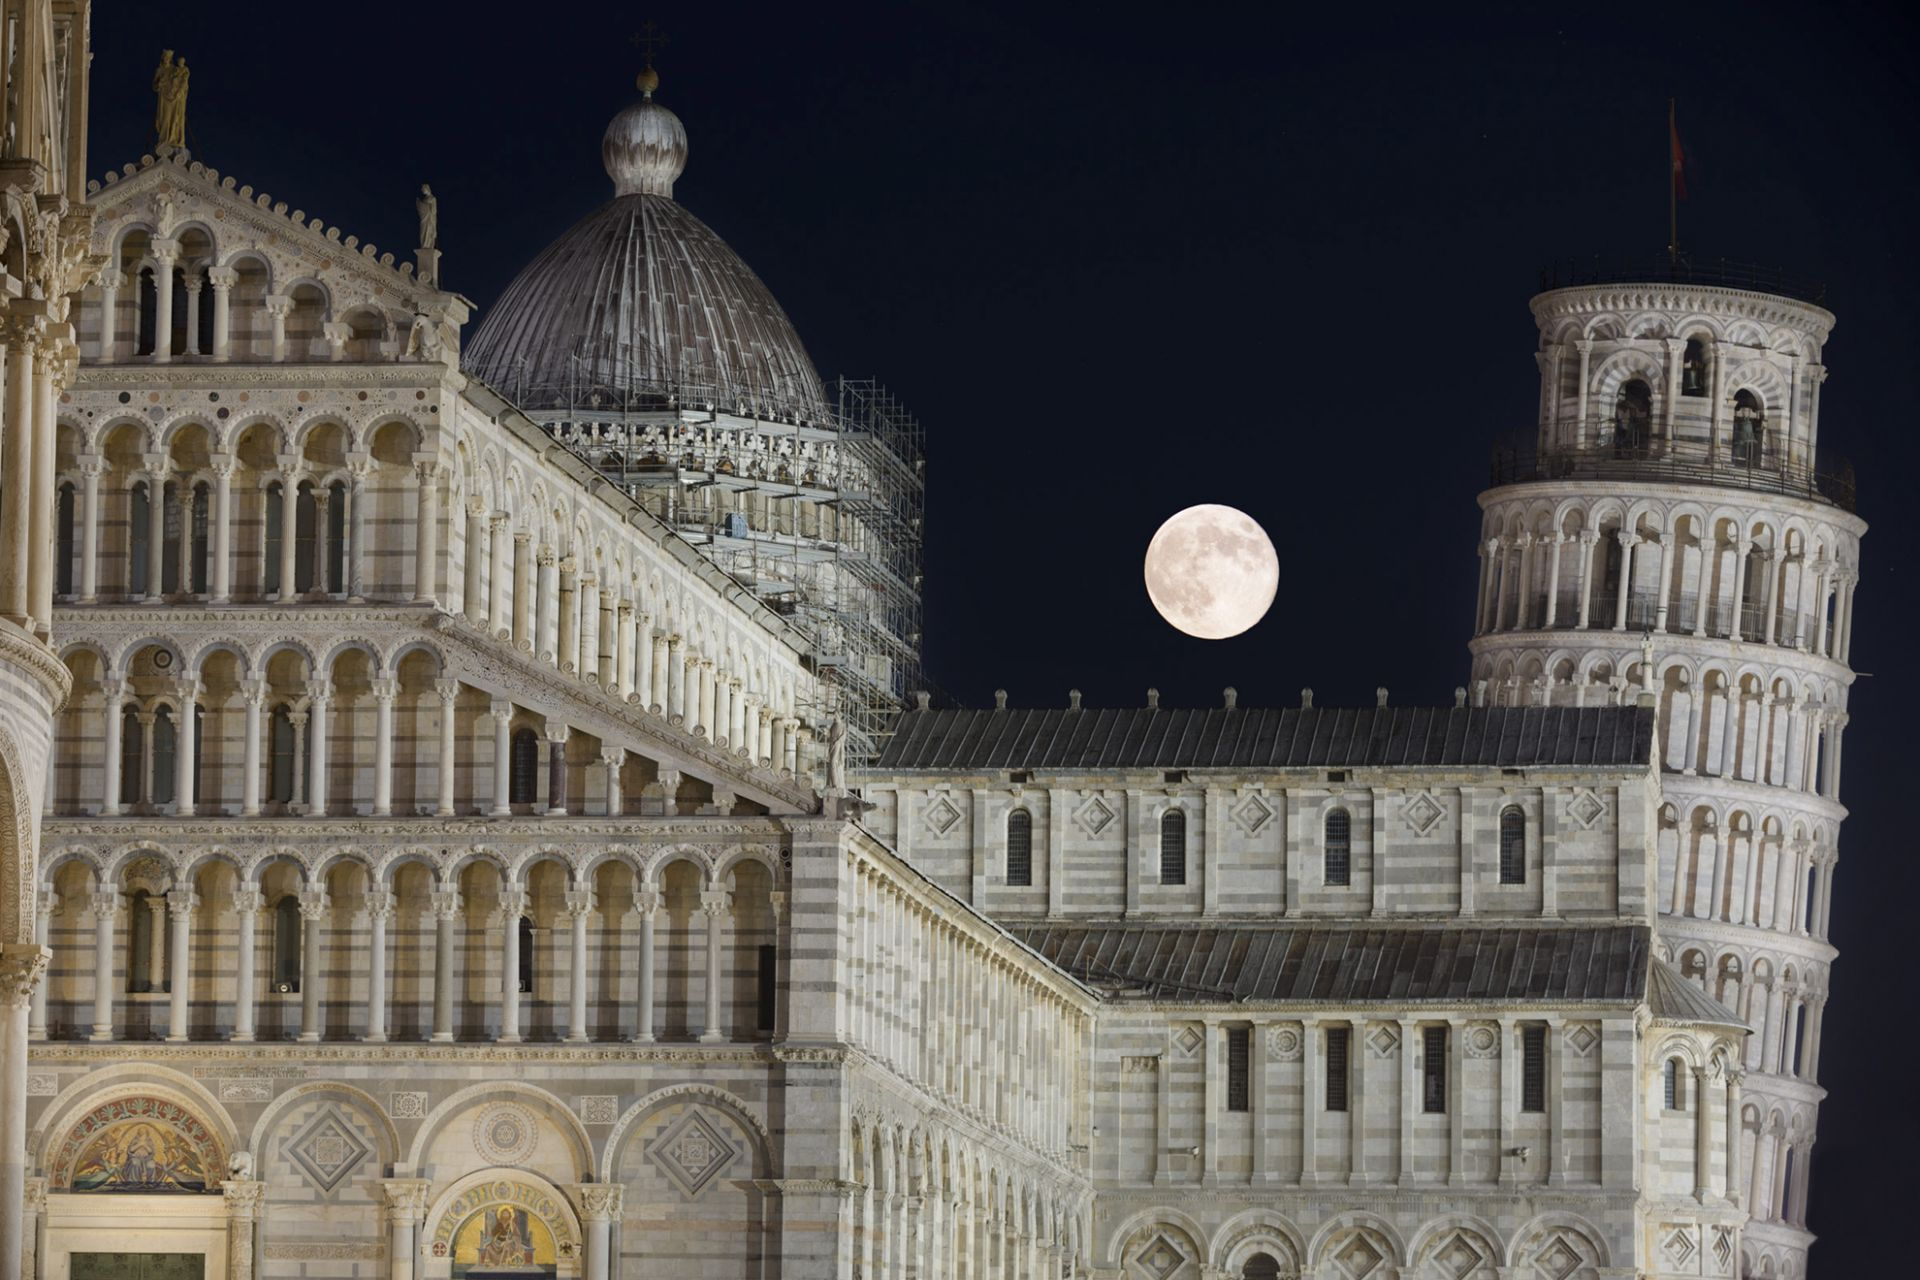 Moon and Leaning Tower